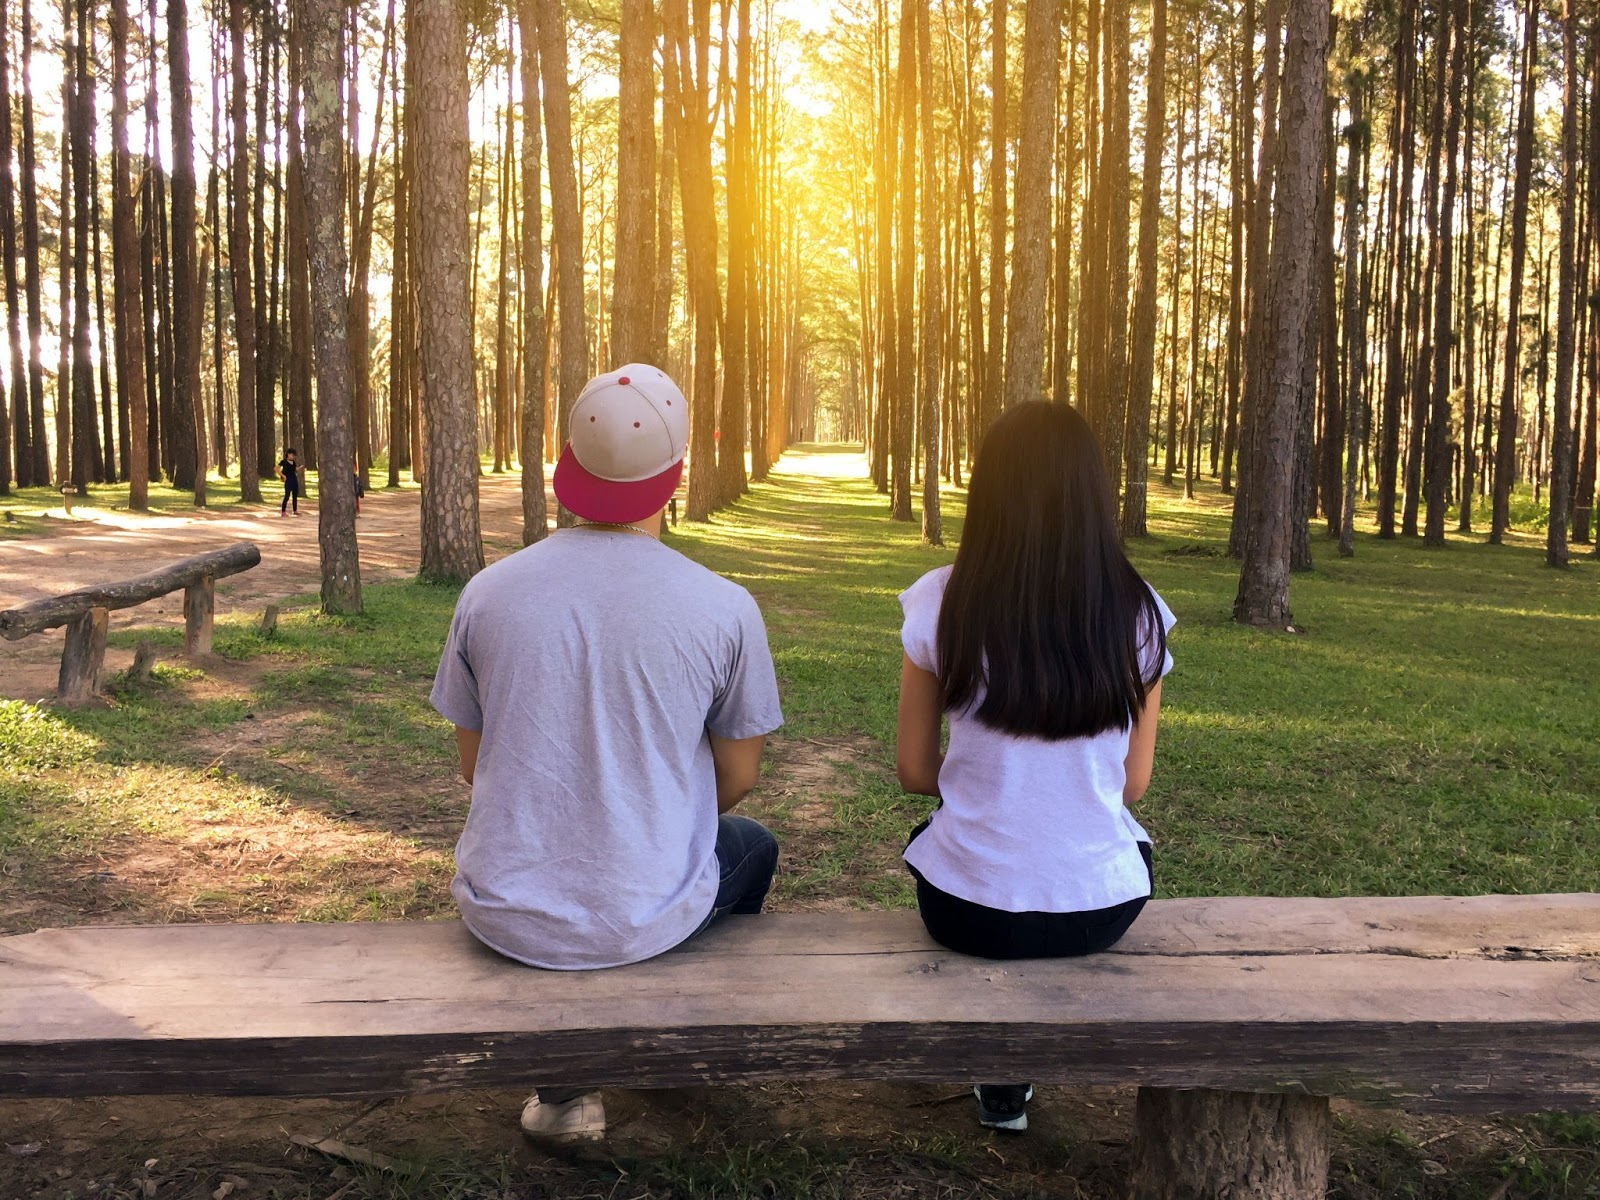 Boy and girl sitting on a bench in a forest looking at the sunset.